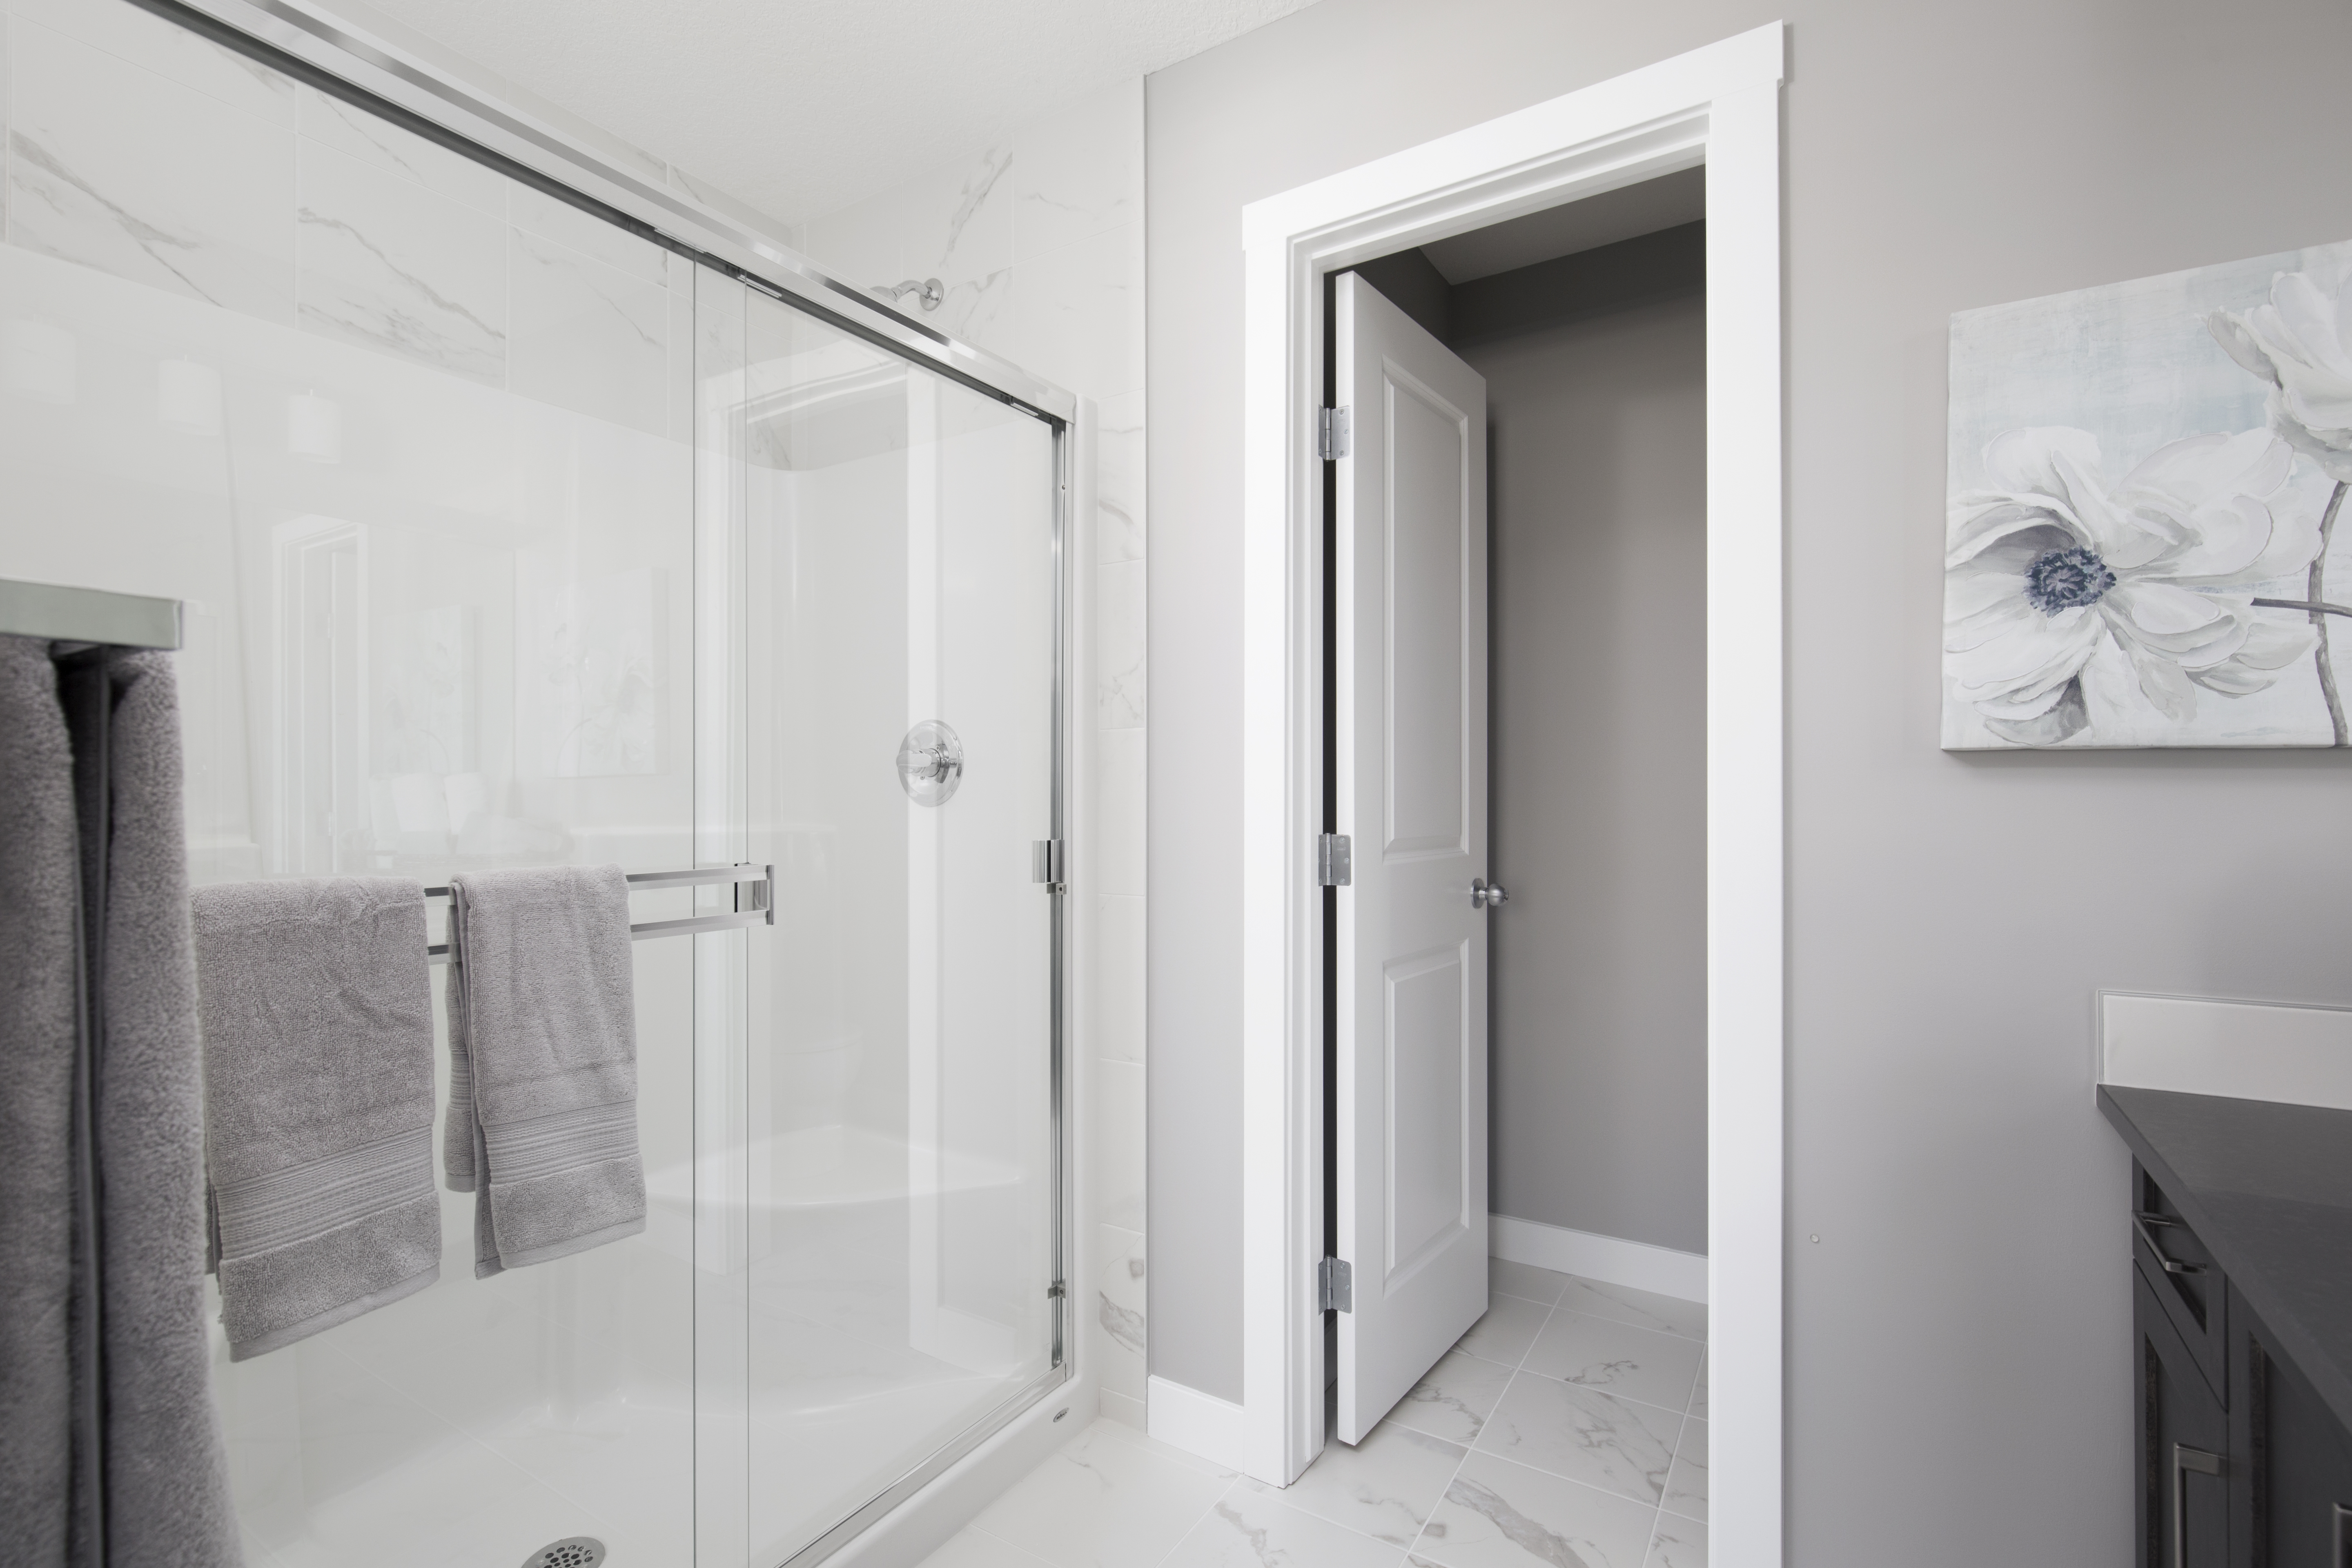 extra large shower and powder room in the shane home street-oriented townhome.